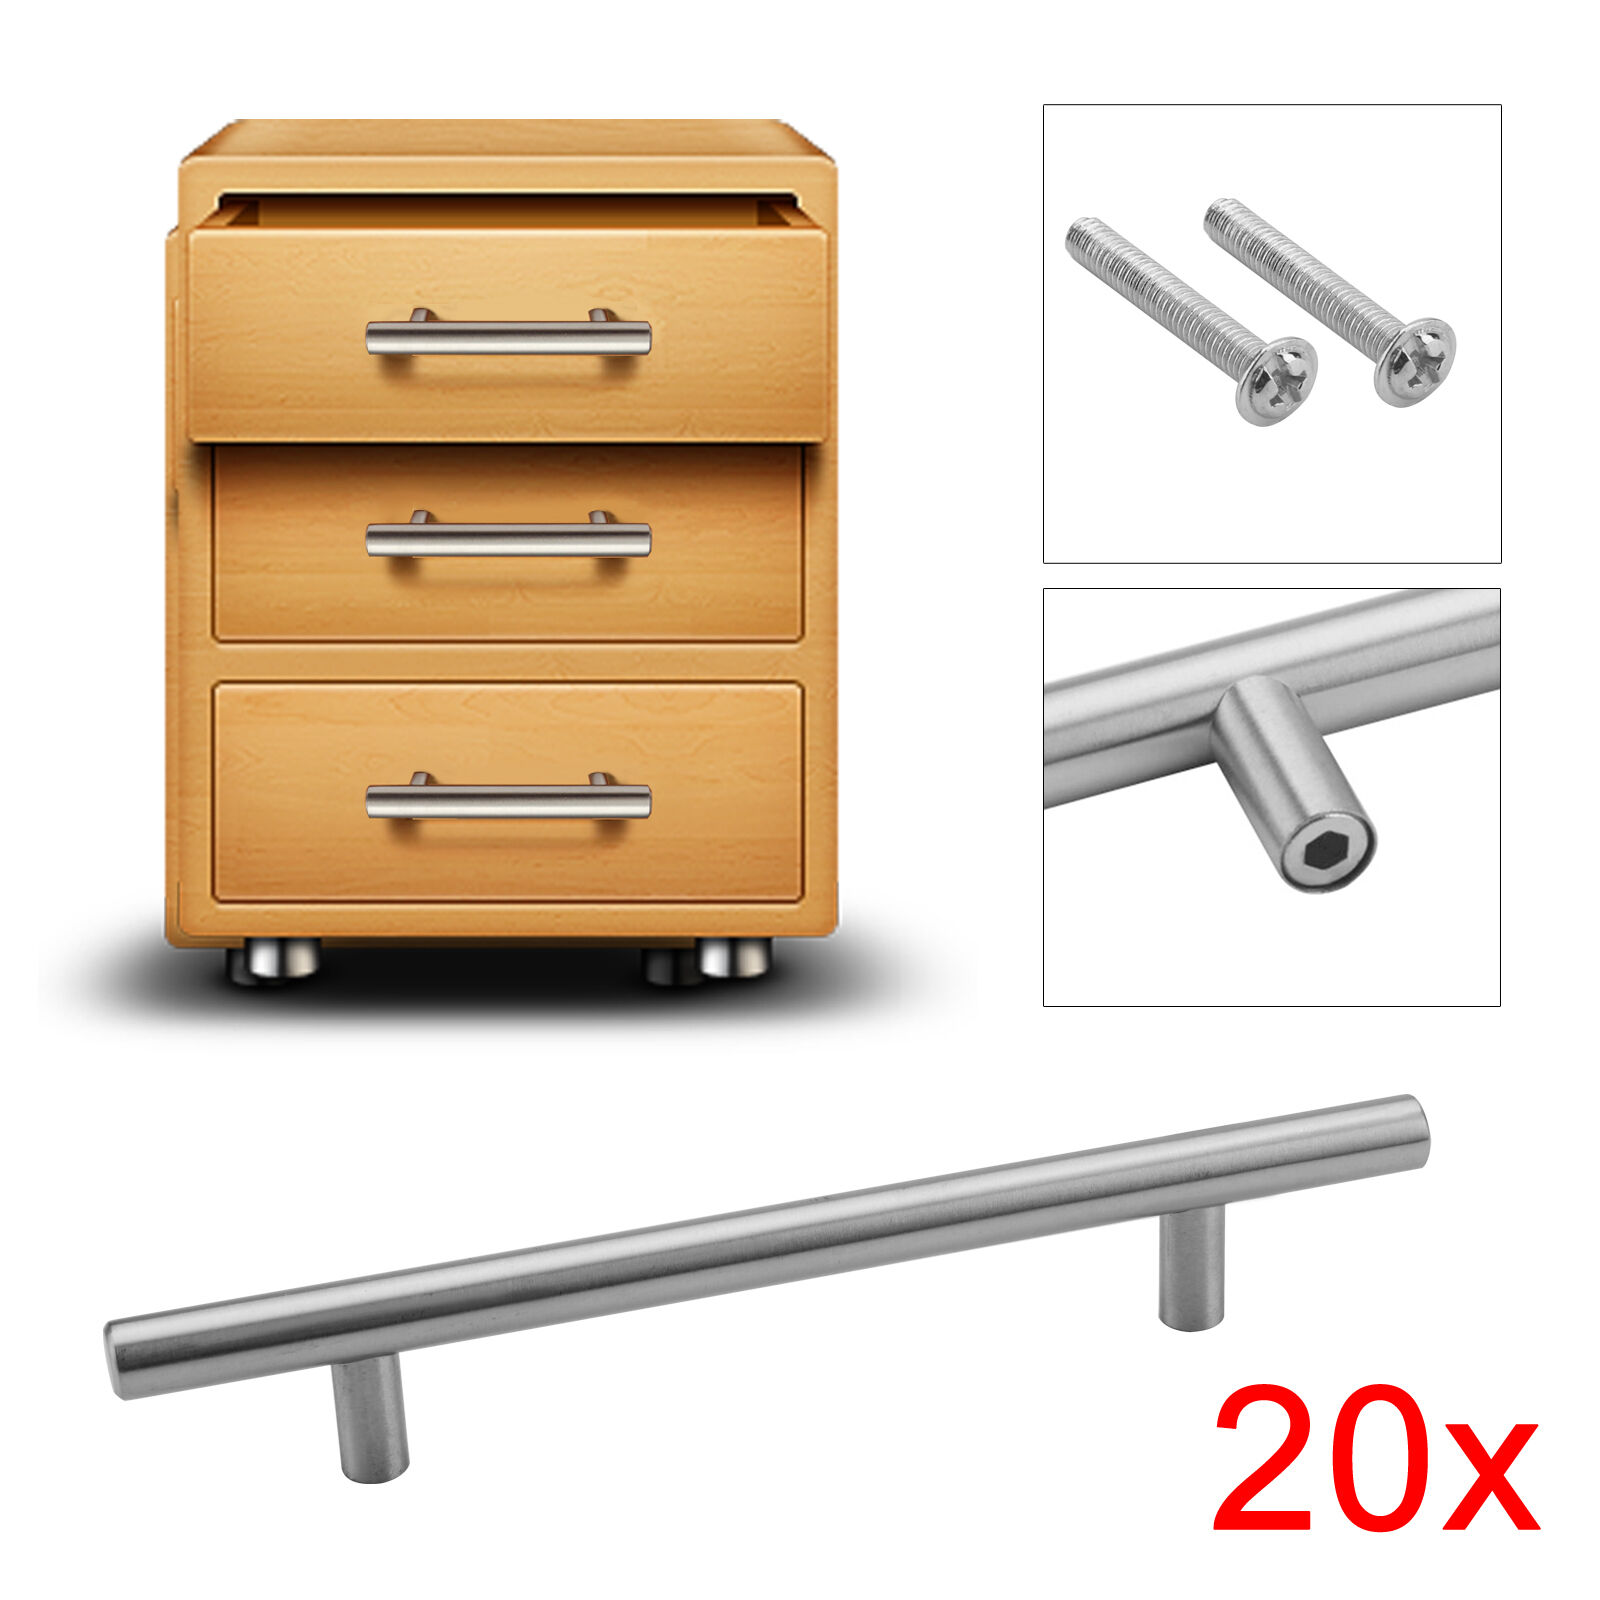 20x t bar poign es de portes en acier bross cuisine cabinet tiroir armoire vis ebay. Black Bedroom Furniture Sets. Home Design Ideas